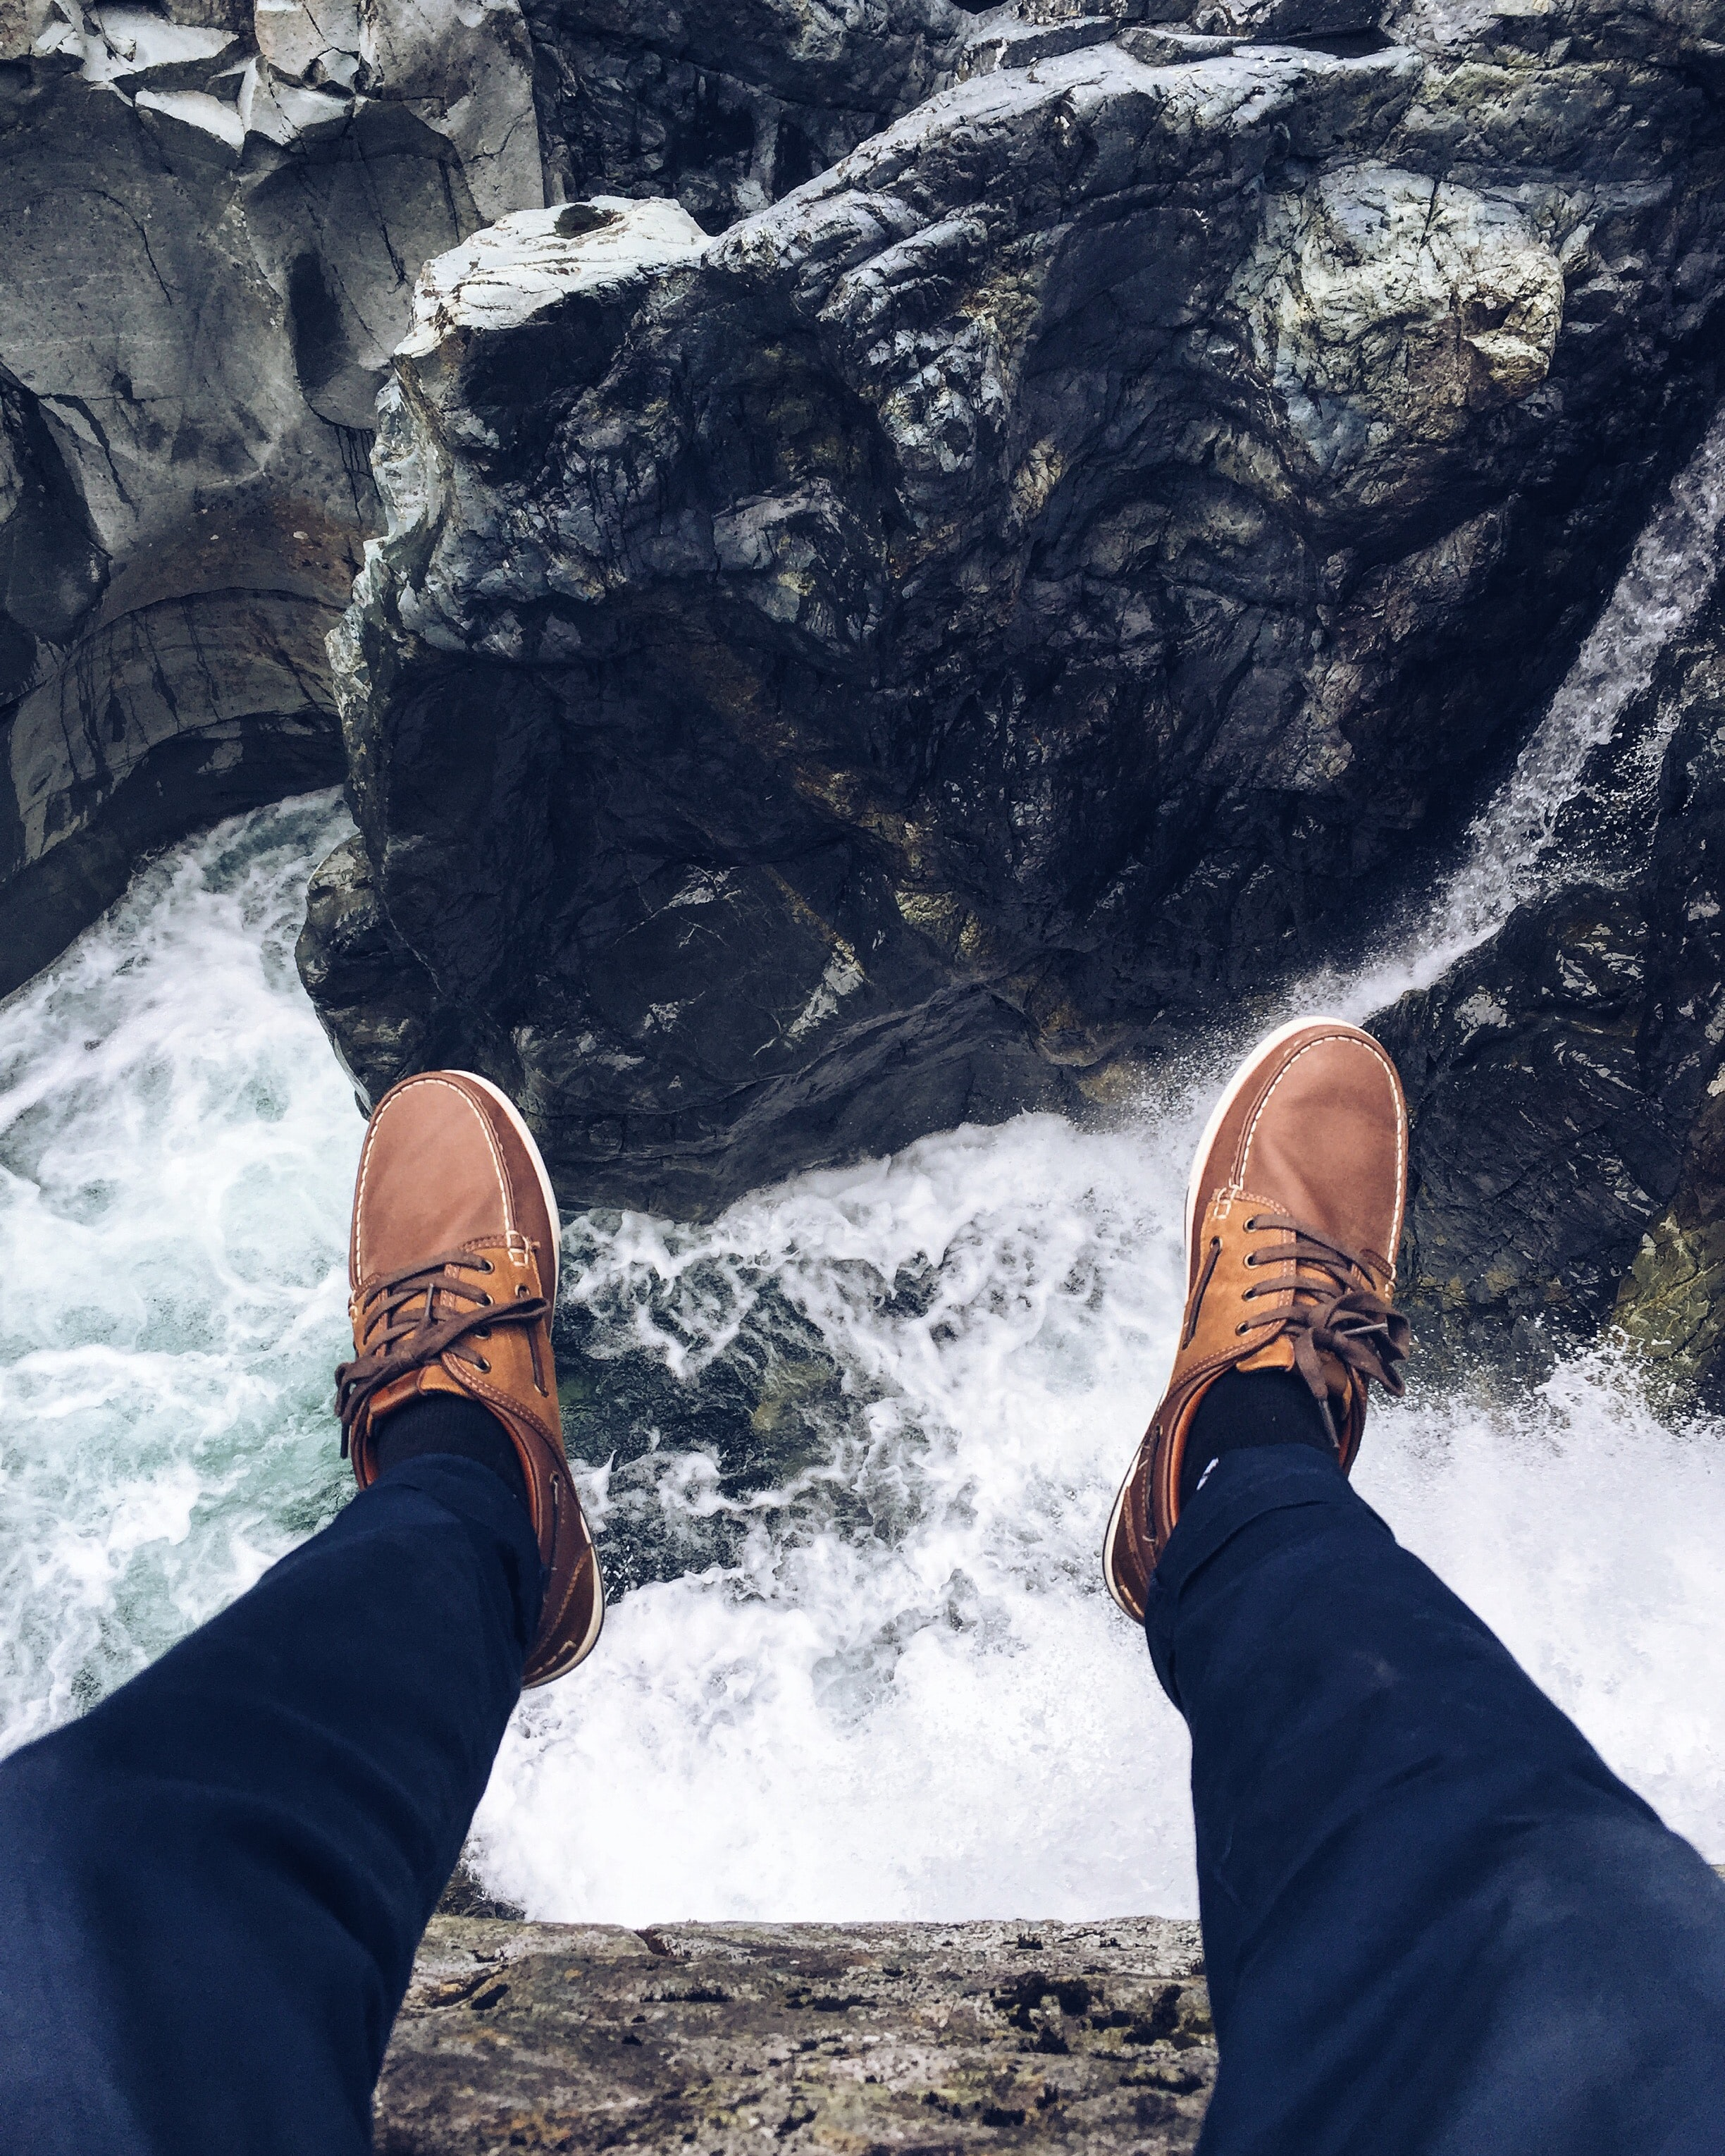 A person's feet in leather shoes dangling off a rock ledge over a fast-flowing creek